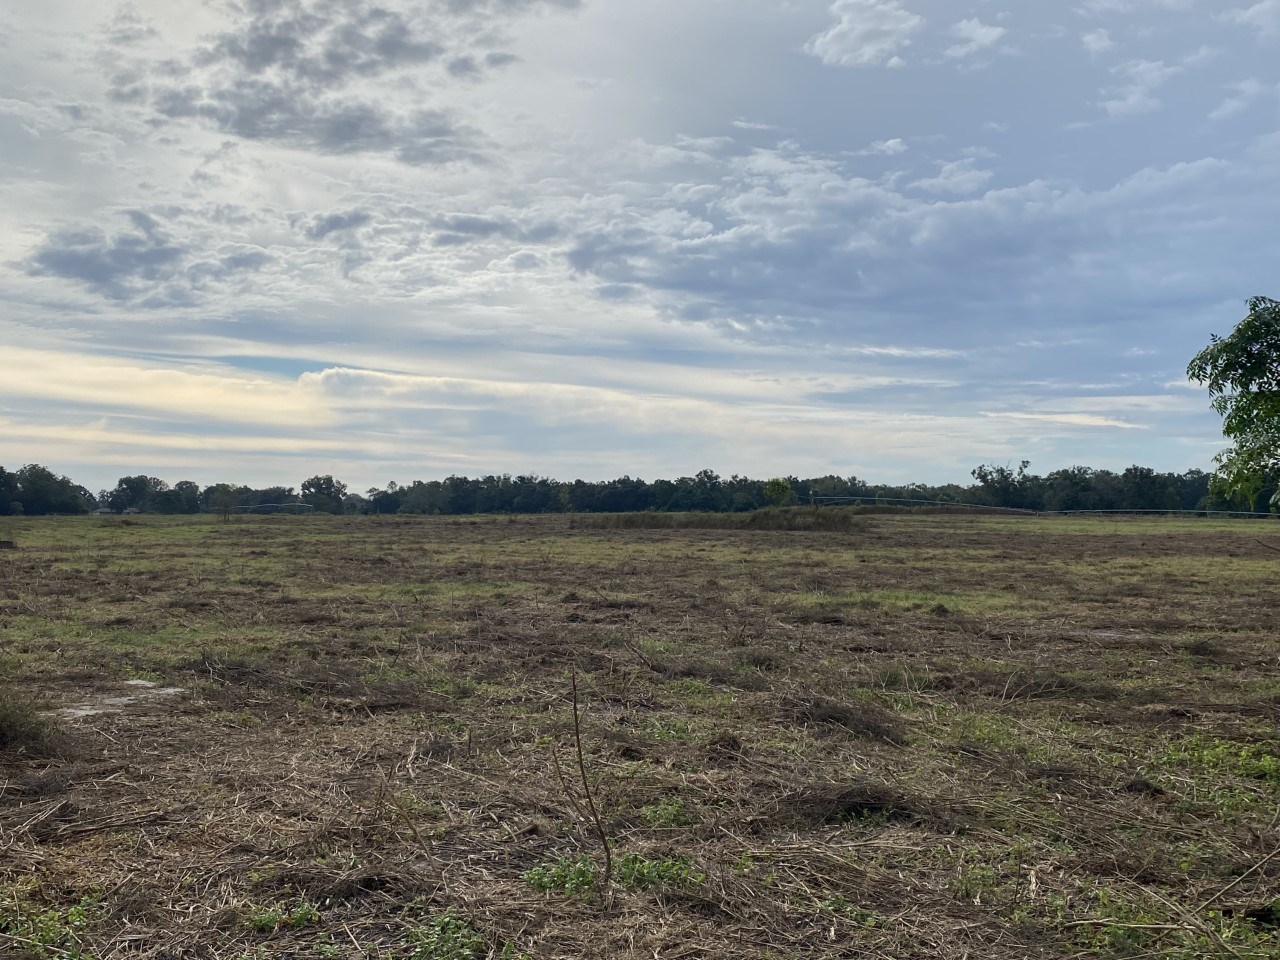 20 ACRE PASTURE FARMLAND FOR ONLY $160,000!!!!